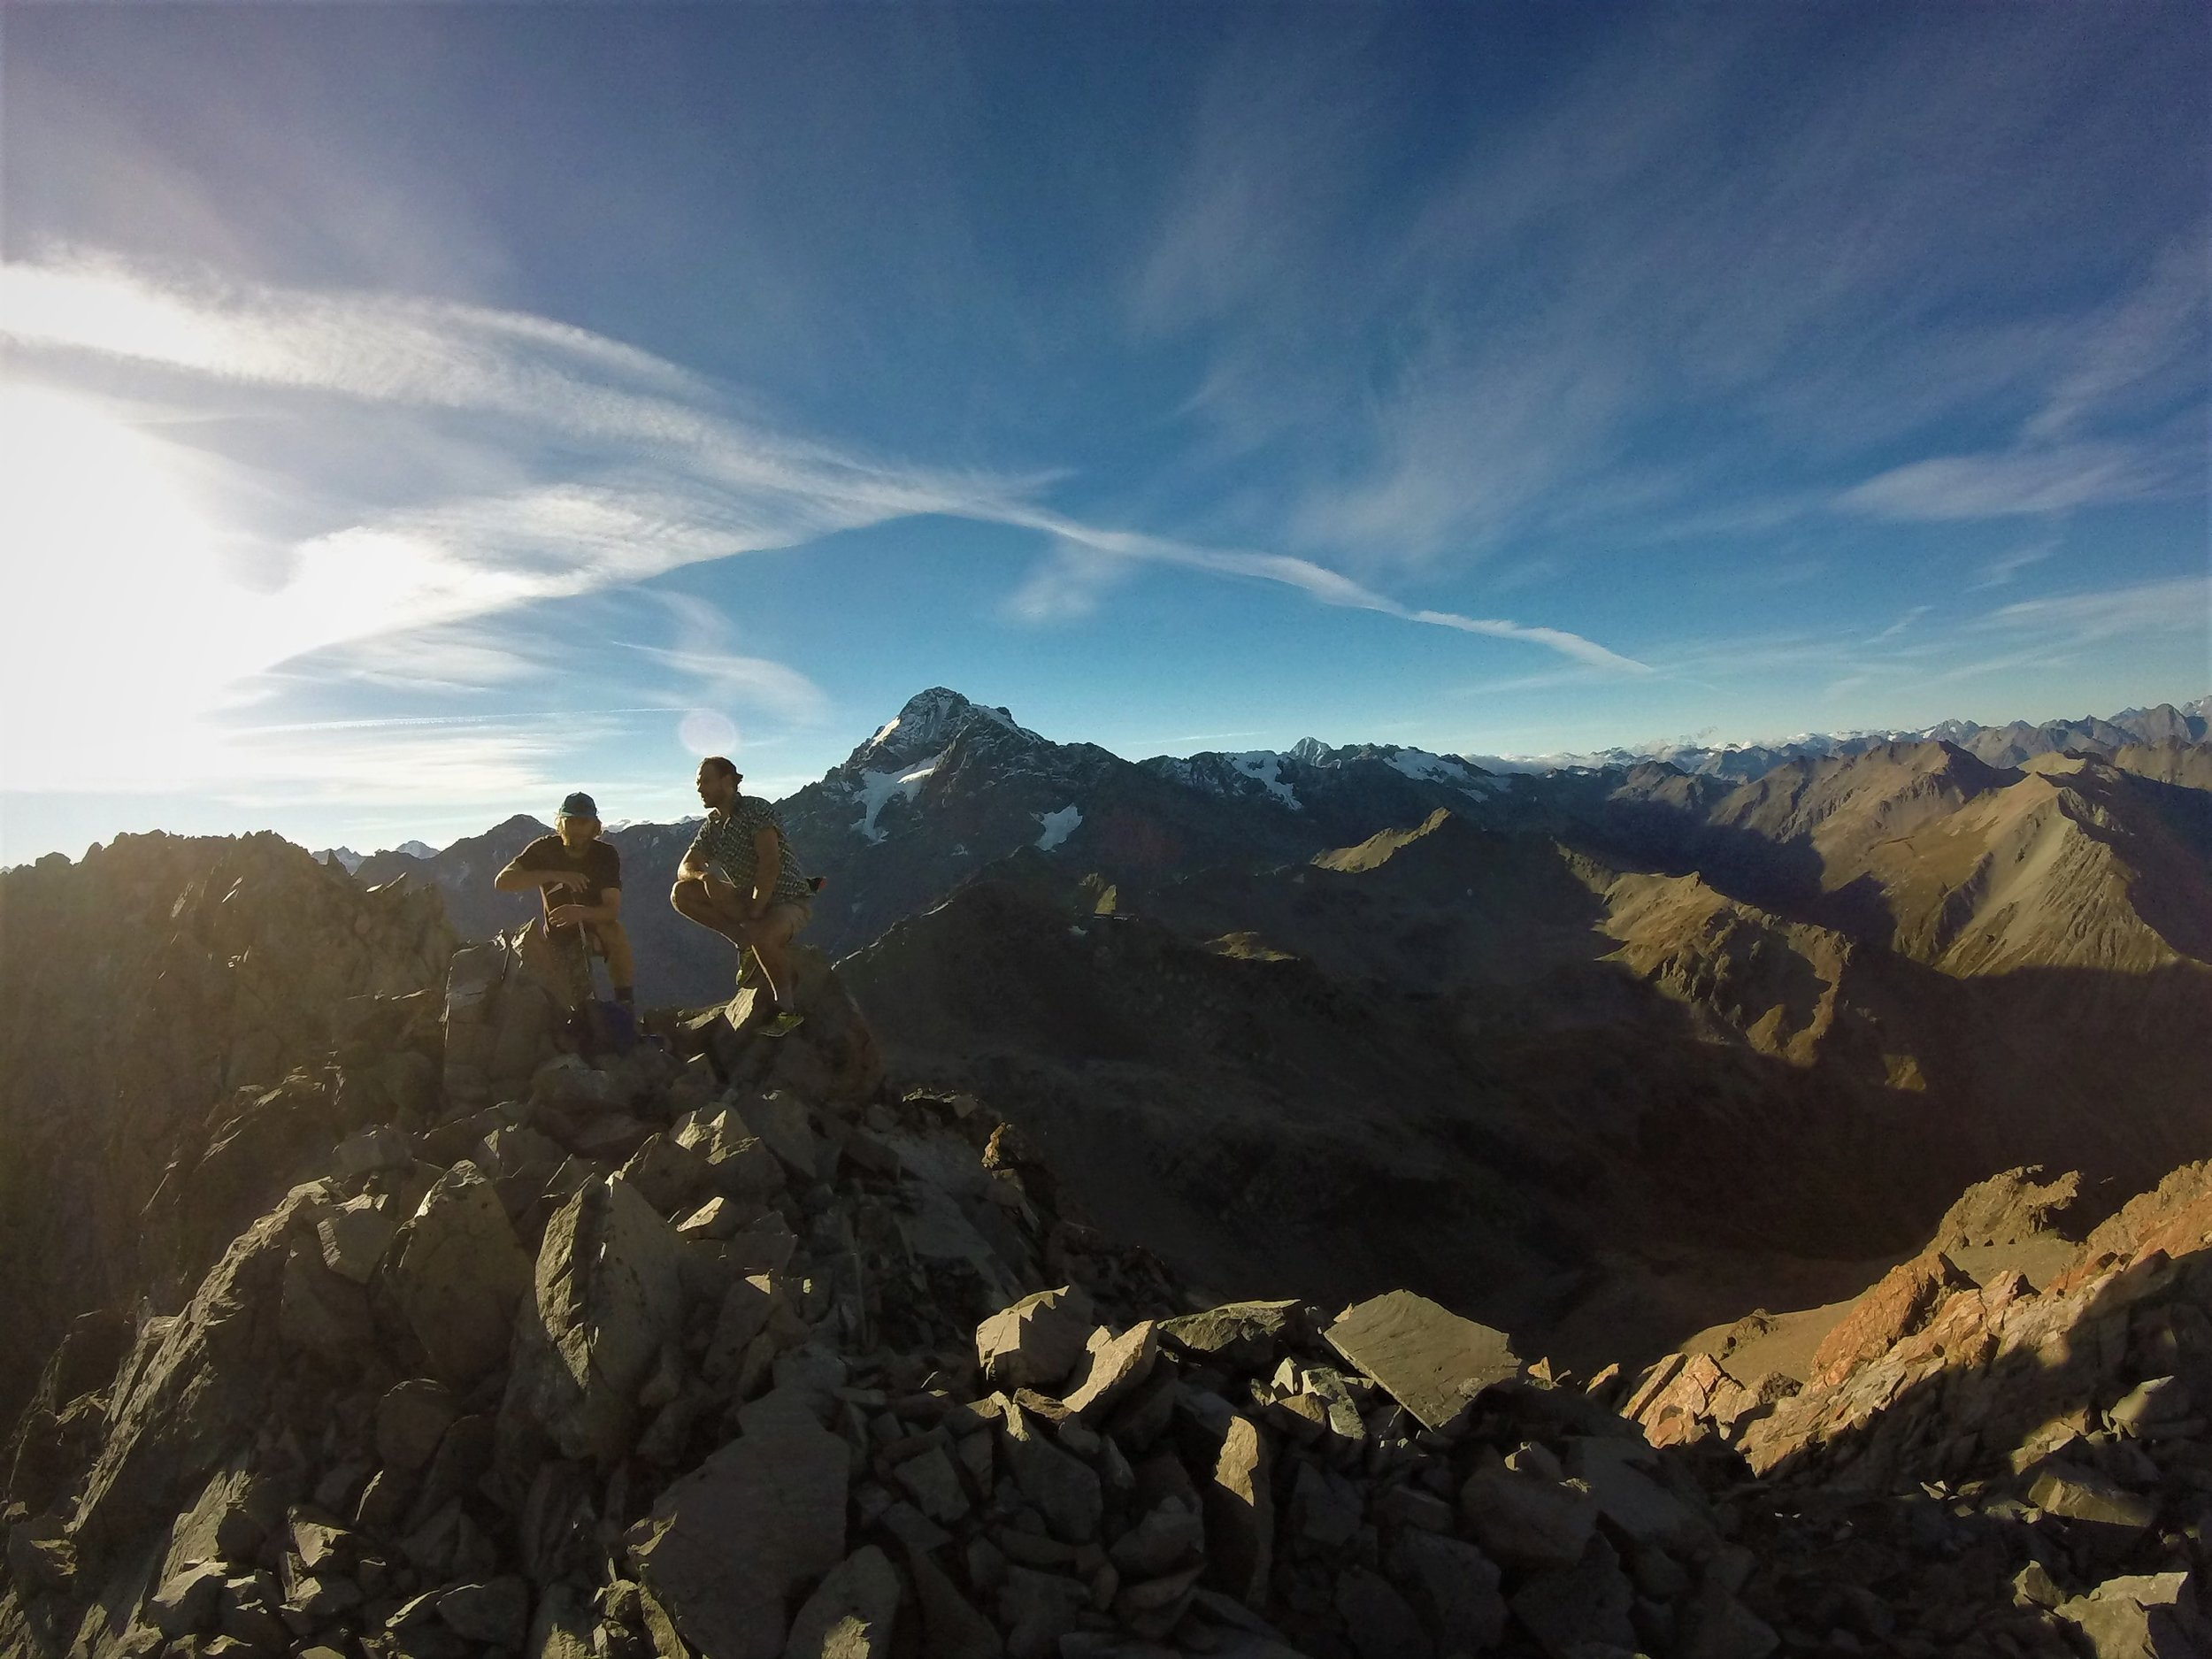 Ben and Jos on the summit of peak 2285 with Mount Sibbald behind.